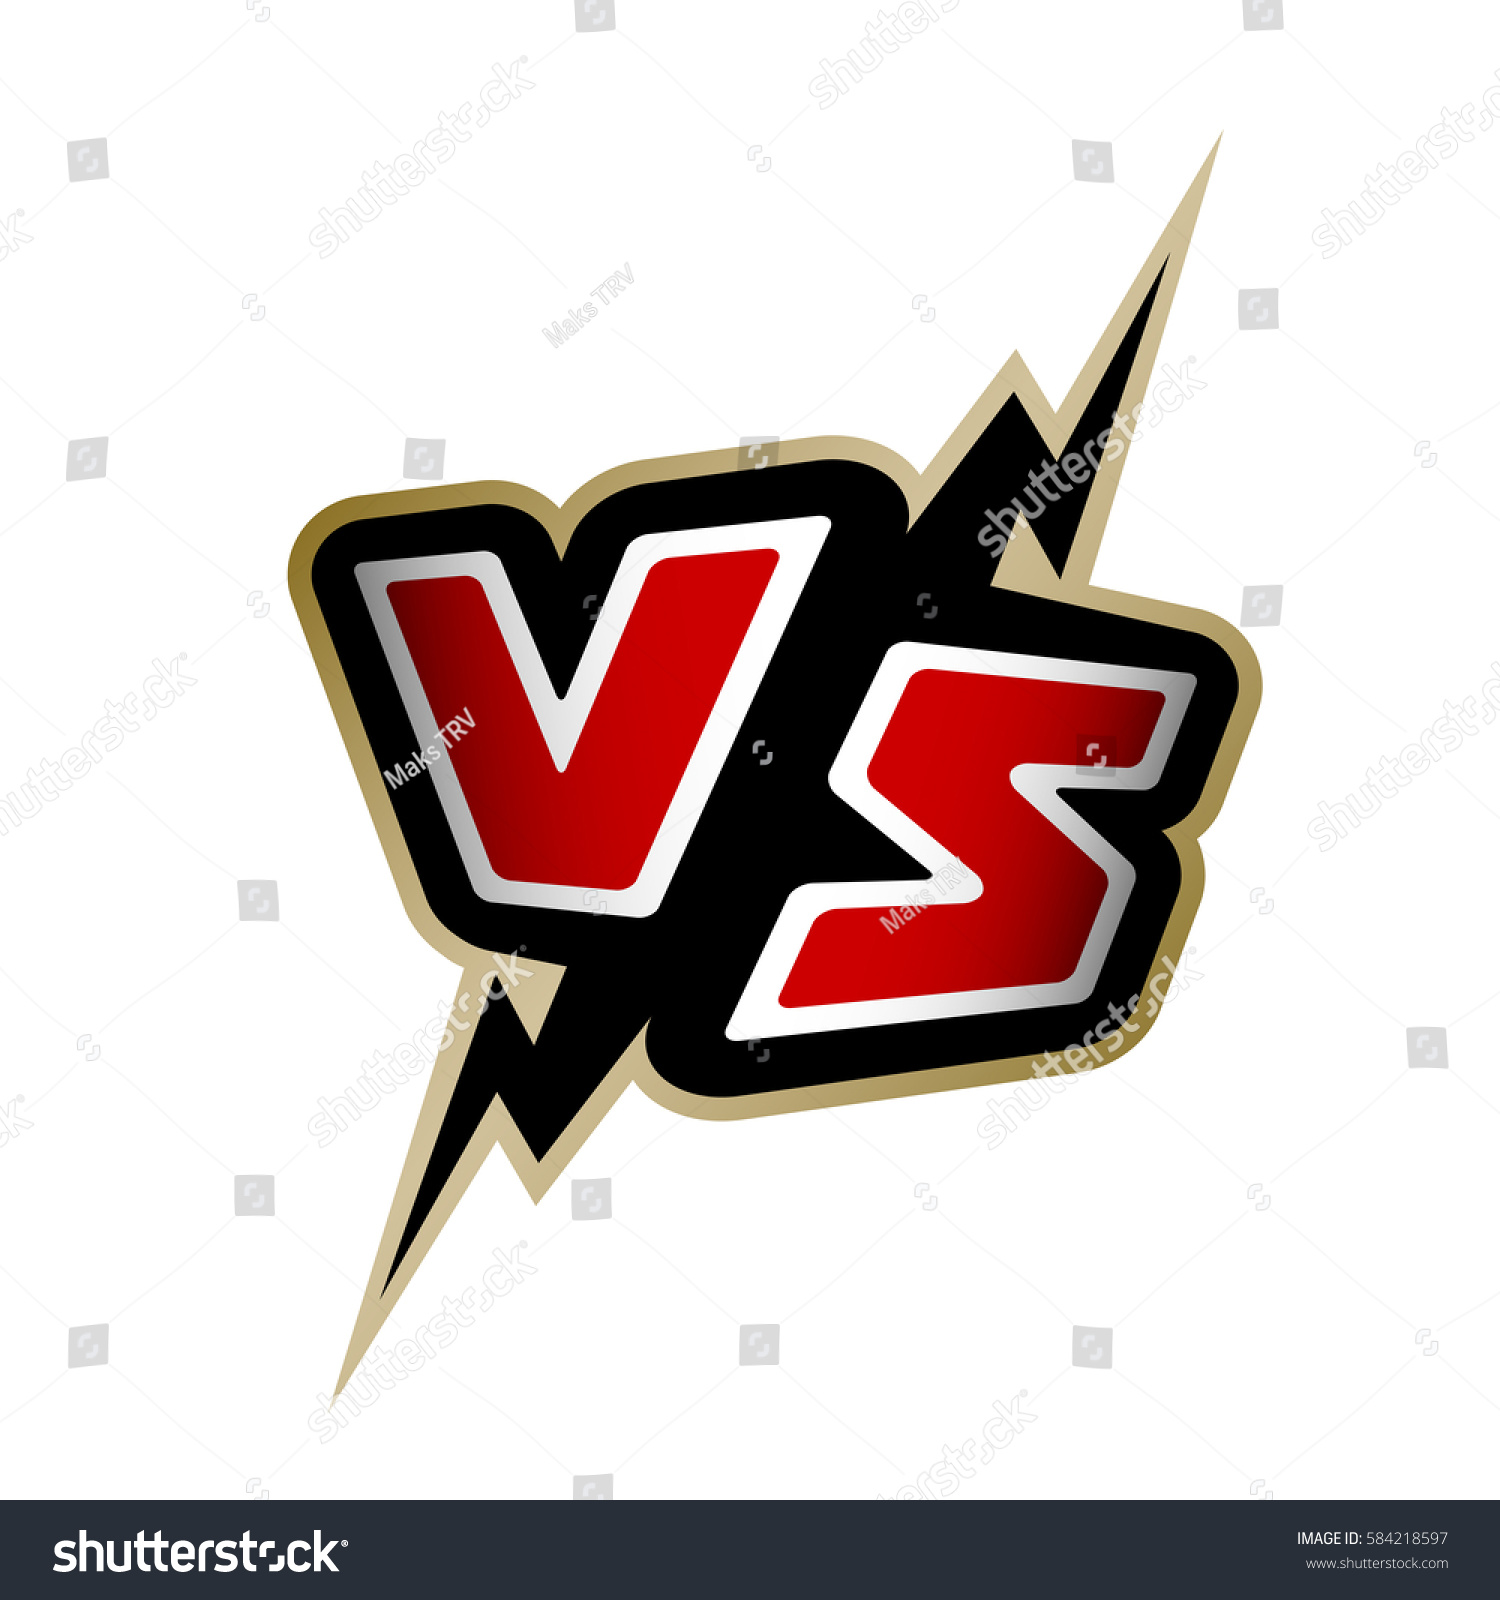 Versus Letters Vs Logo Stock Vector (Royalty Free) 584218597